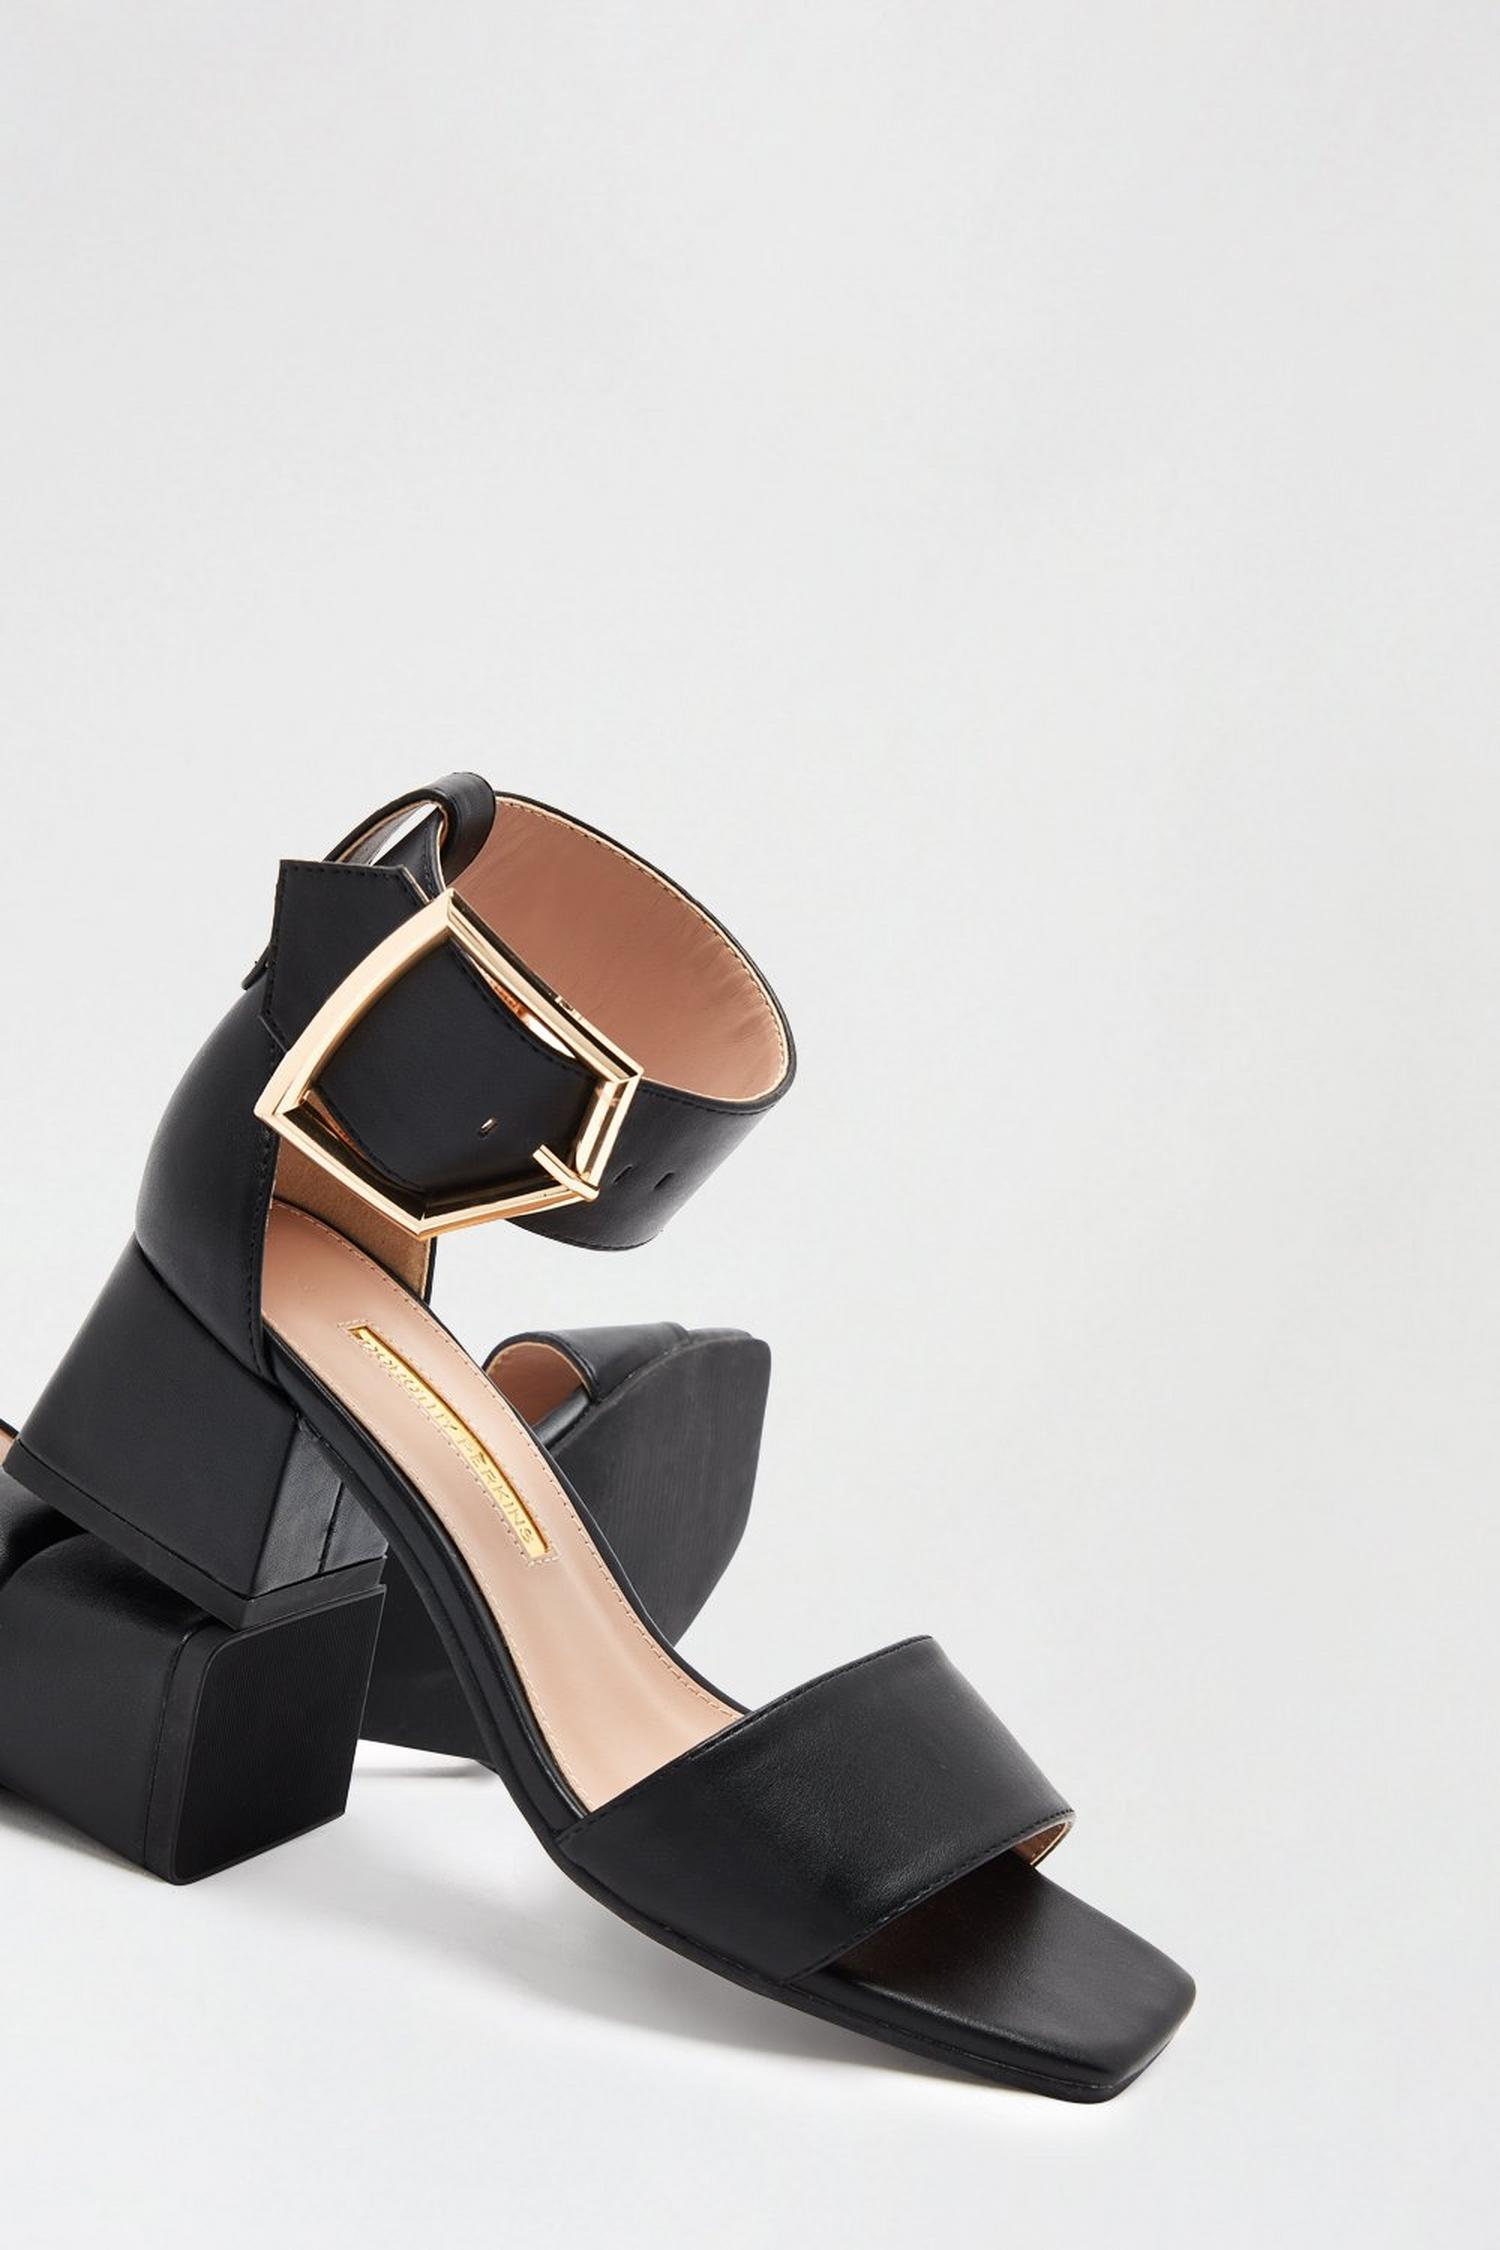 105 Black Saga Heeled Sandal image number 4